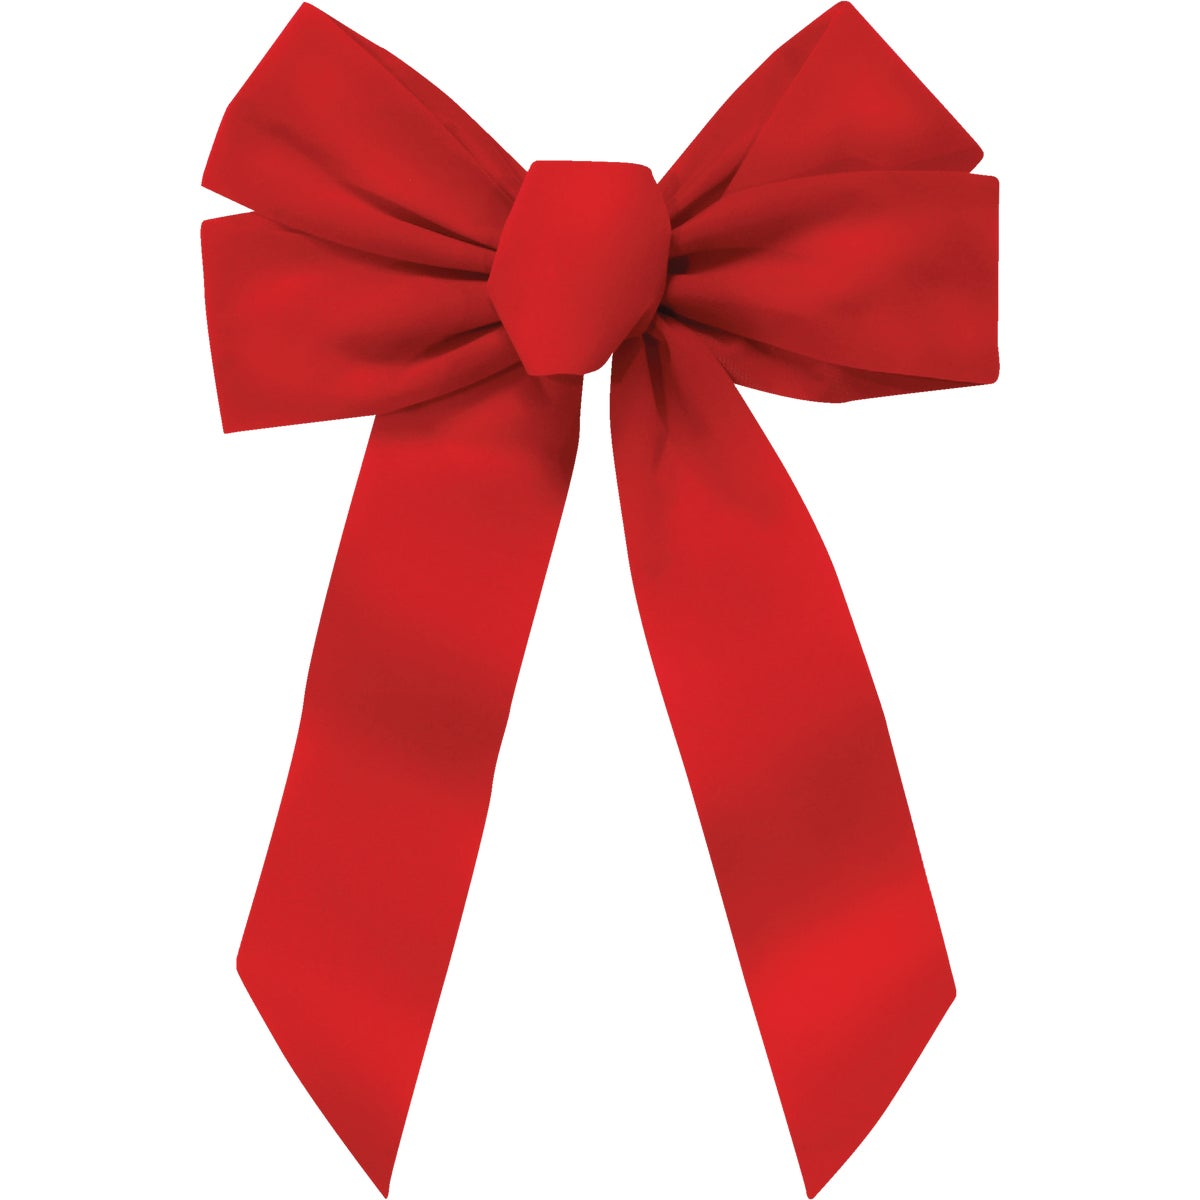 11X16 4 LOOP RED BOW - VE009ARD by Dyno Seasonal  Tx